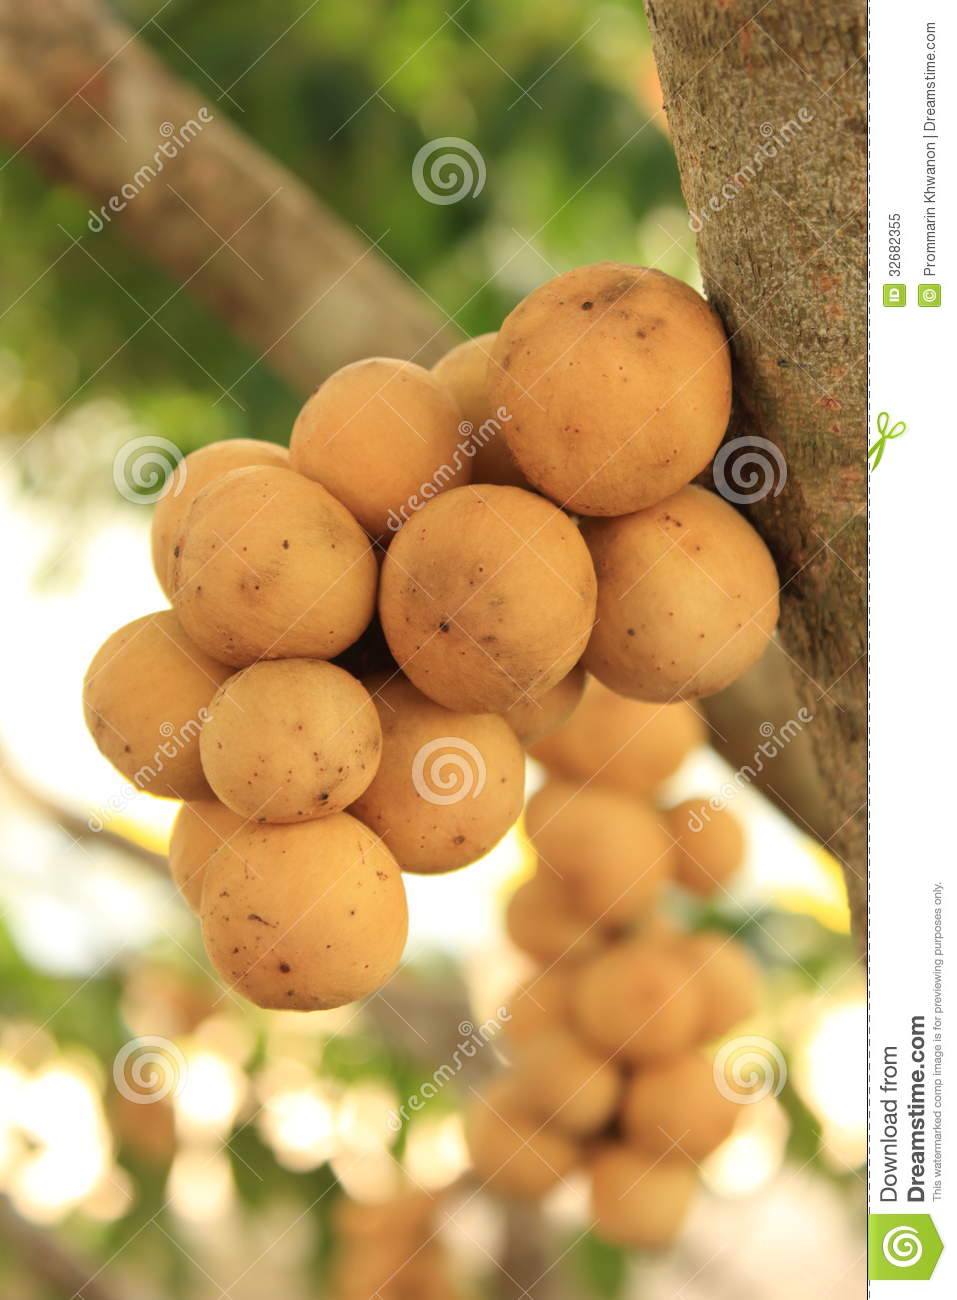 Wollongong ,Fruit Thailand. Royalty Free Stock Photo - Image ...